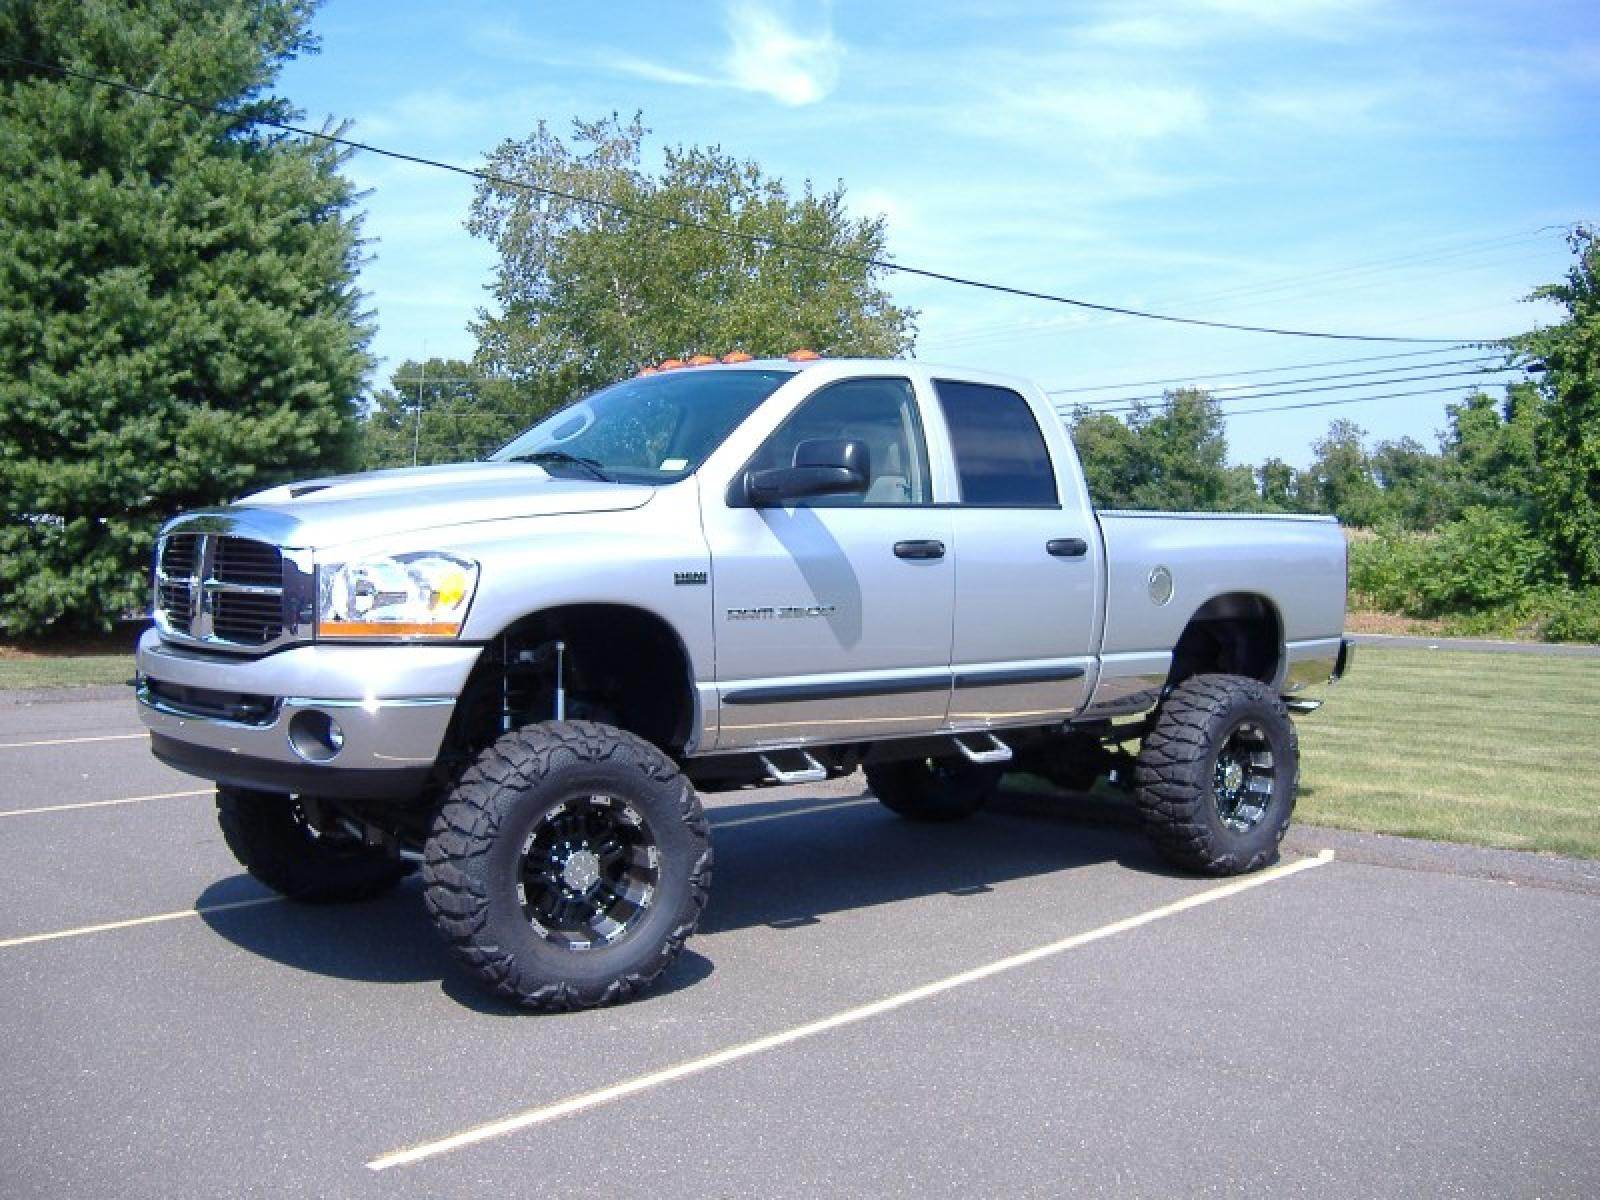 2008 dodge ram pickup 2500 information and photos zombiedrive. Black Bedroom Furniture Sets. Home Design Ideas